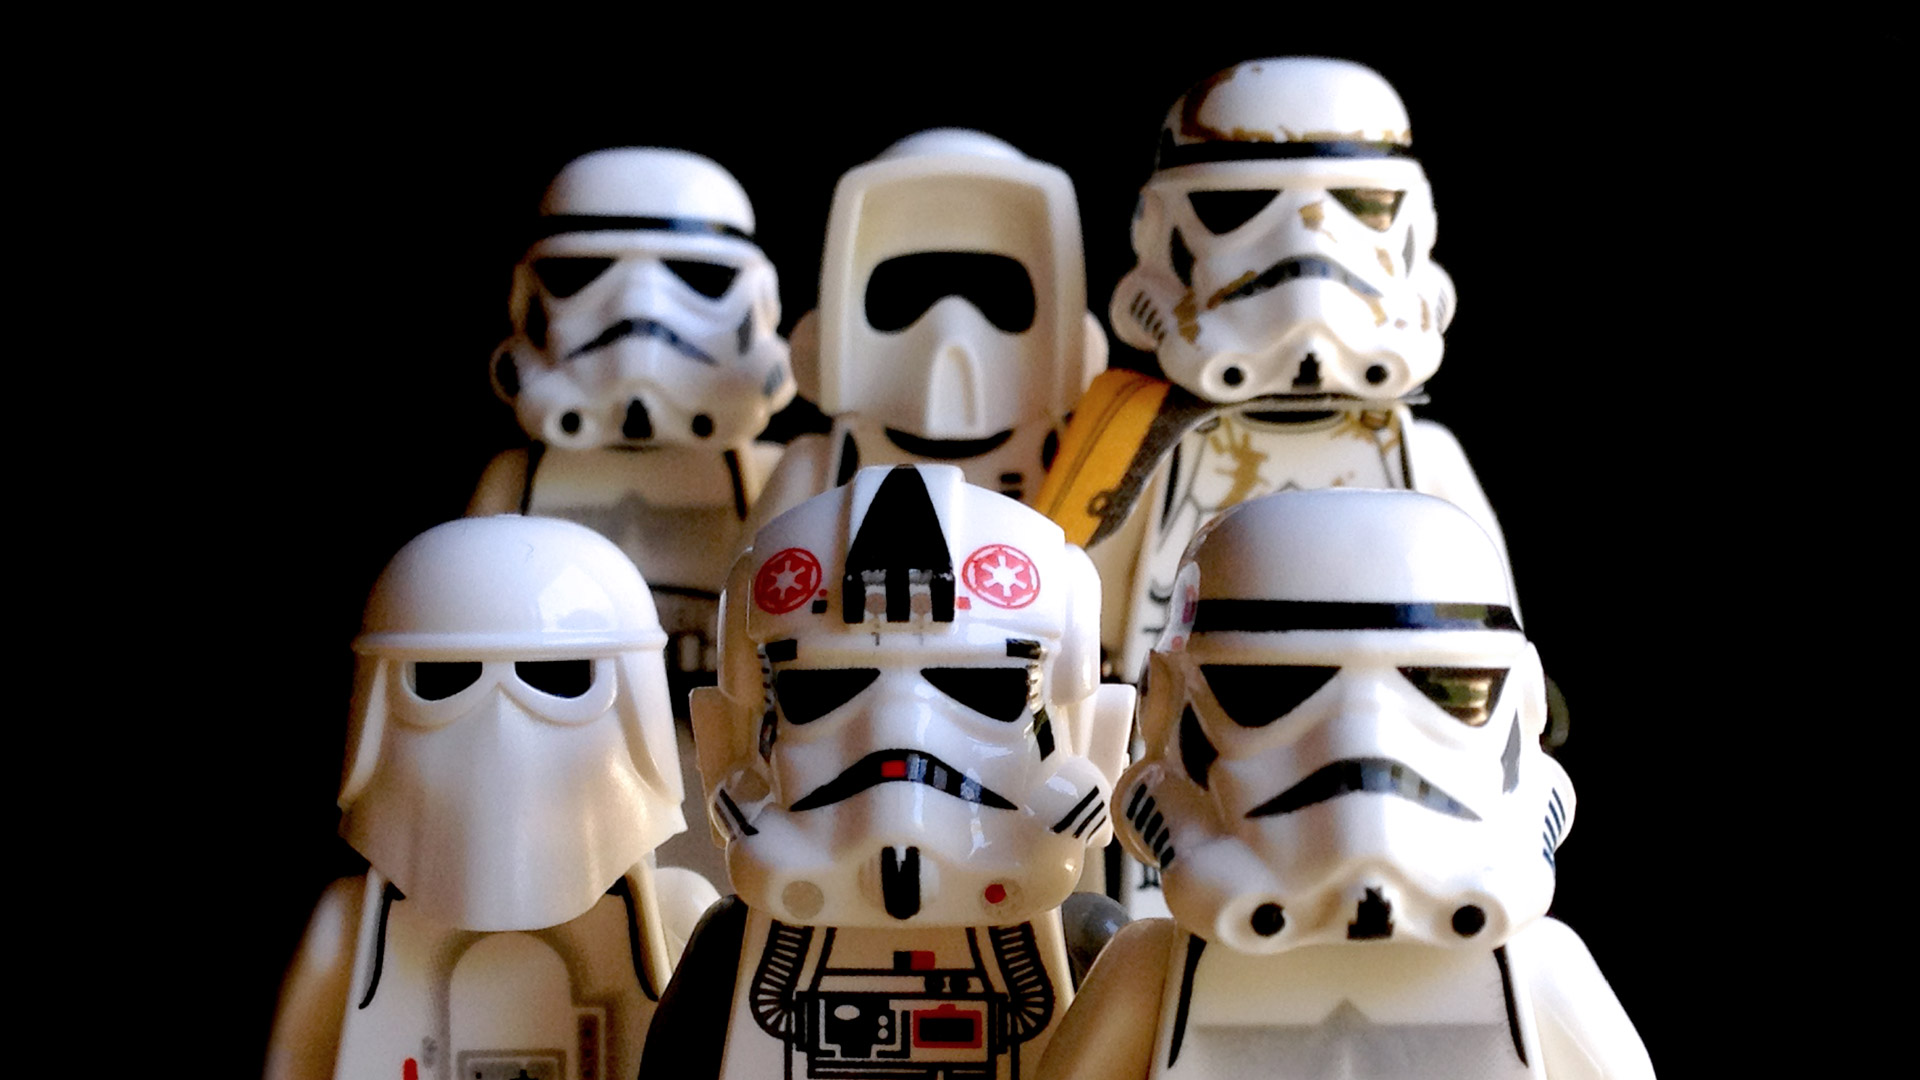 LegoGenre: Trooper Class Photo Wallpaper 1920x1080